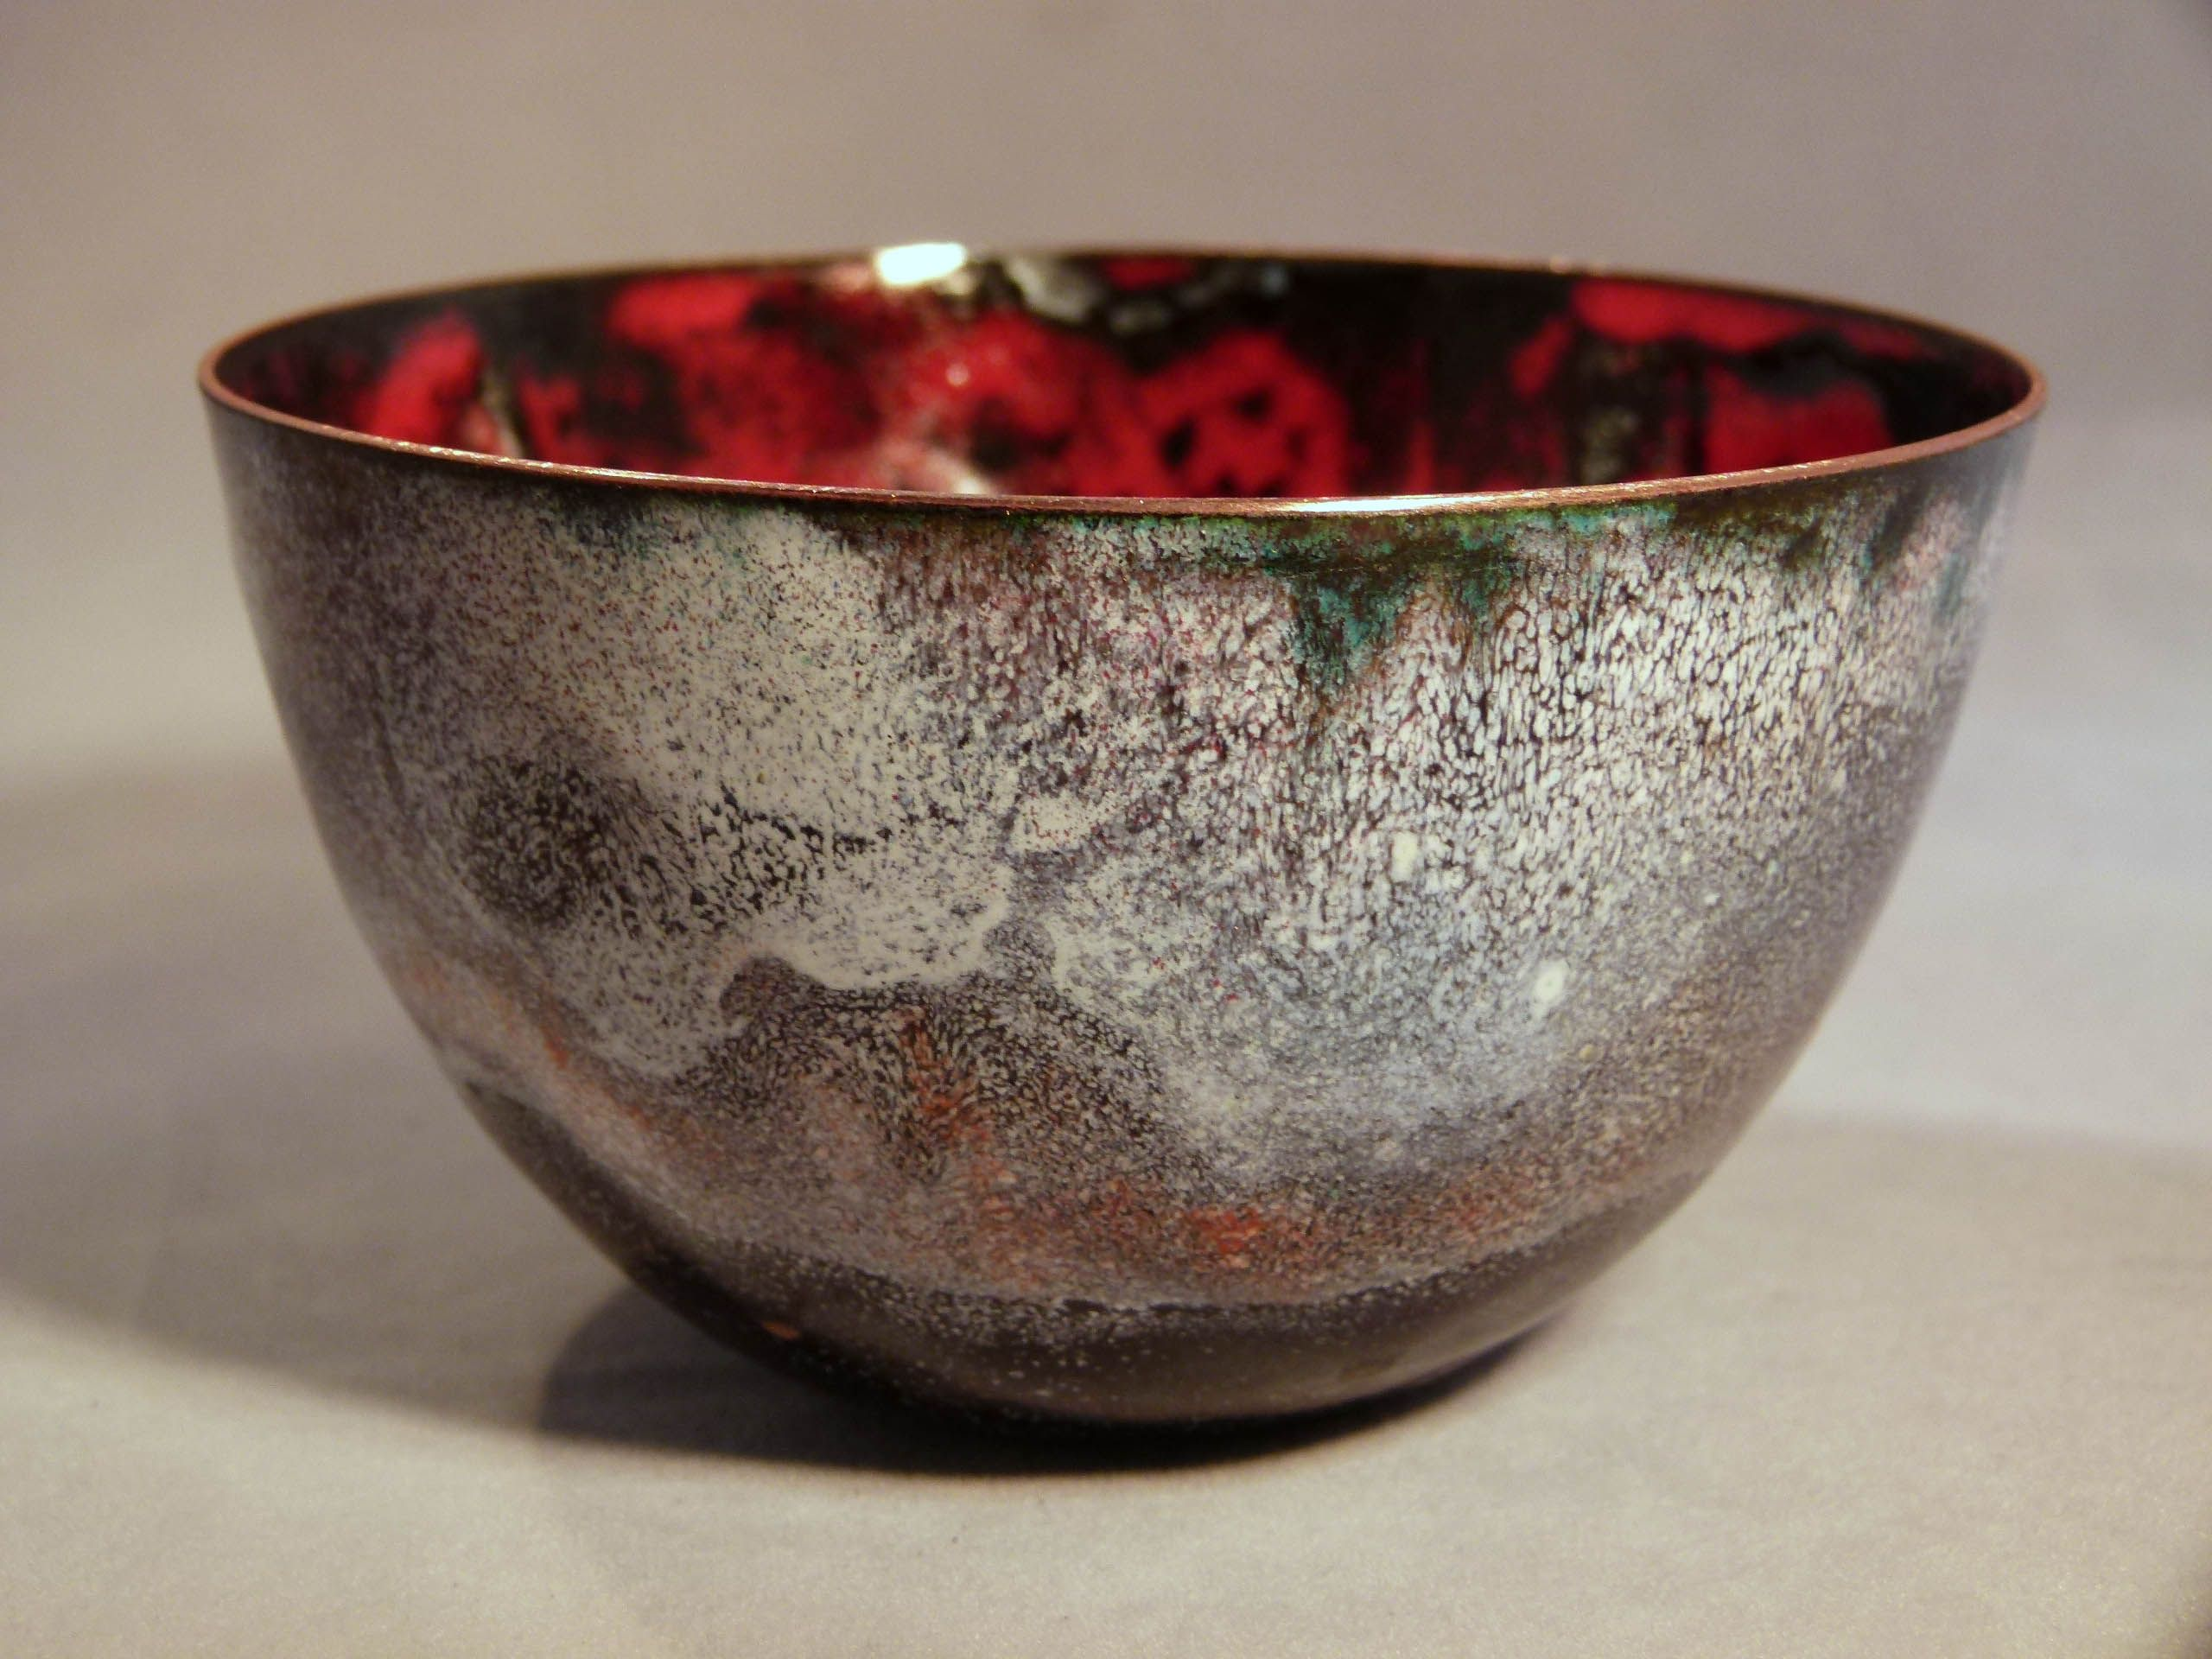 Red Black Inside Smoky Texture On Outside Enamel On Copper By Jackie Simmonds Enamel Bowl Ceramic Texture Copper Bowl